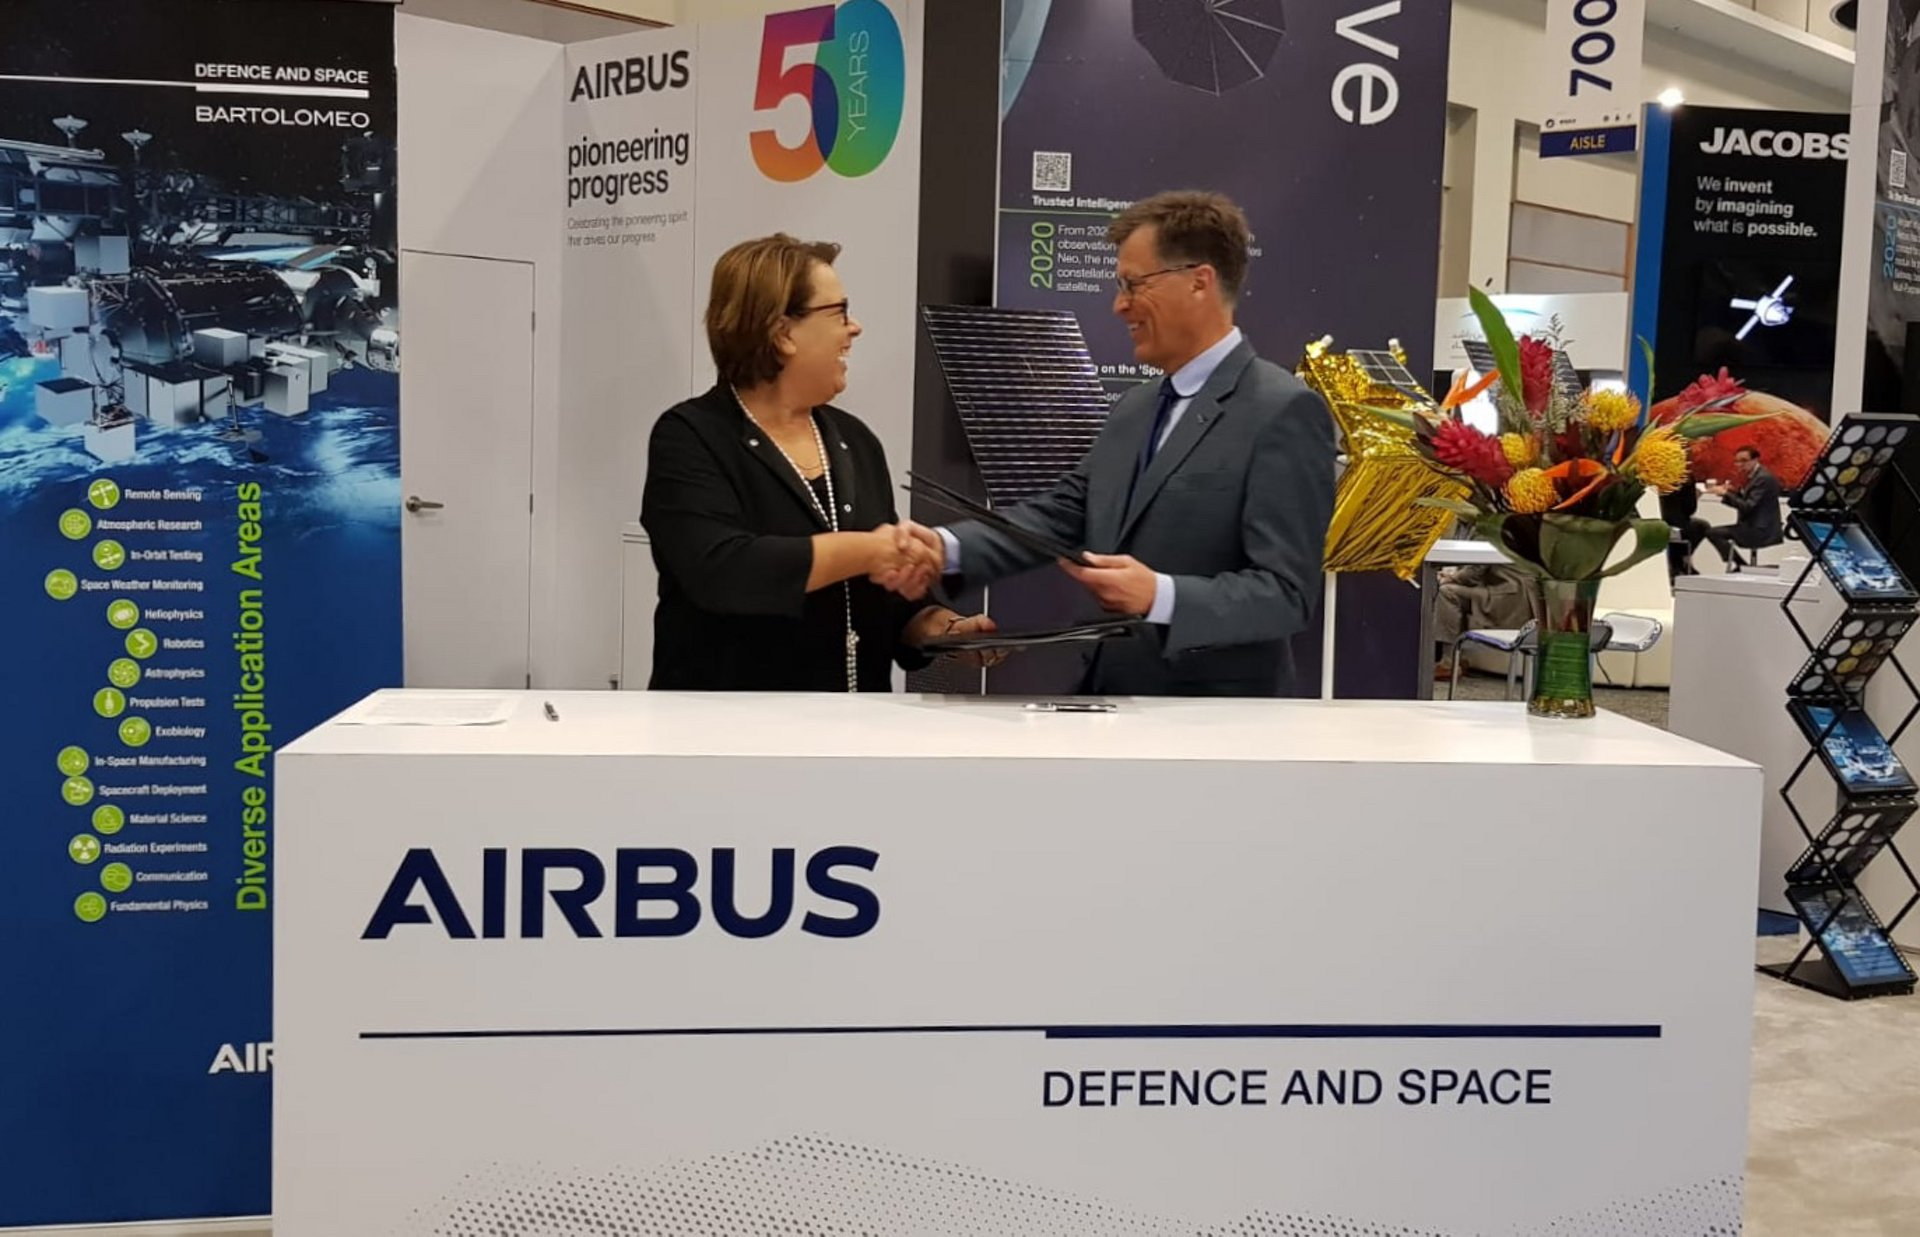 UNOOSA and Airbus announce opportunity for utilizing Airbus Bartolomeo platform